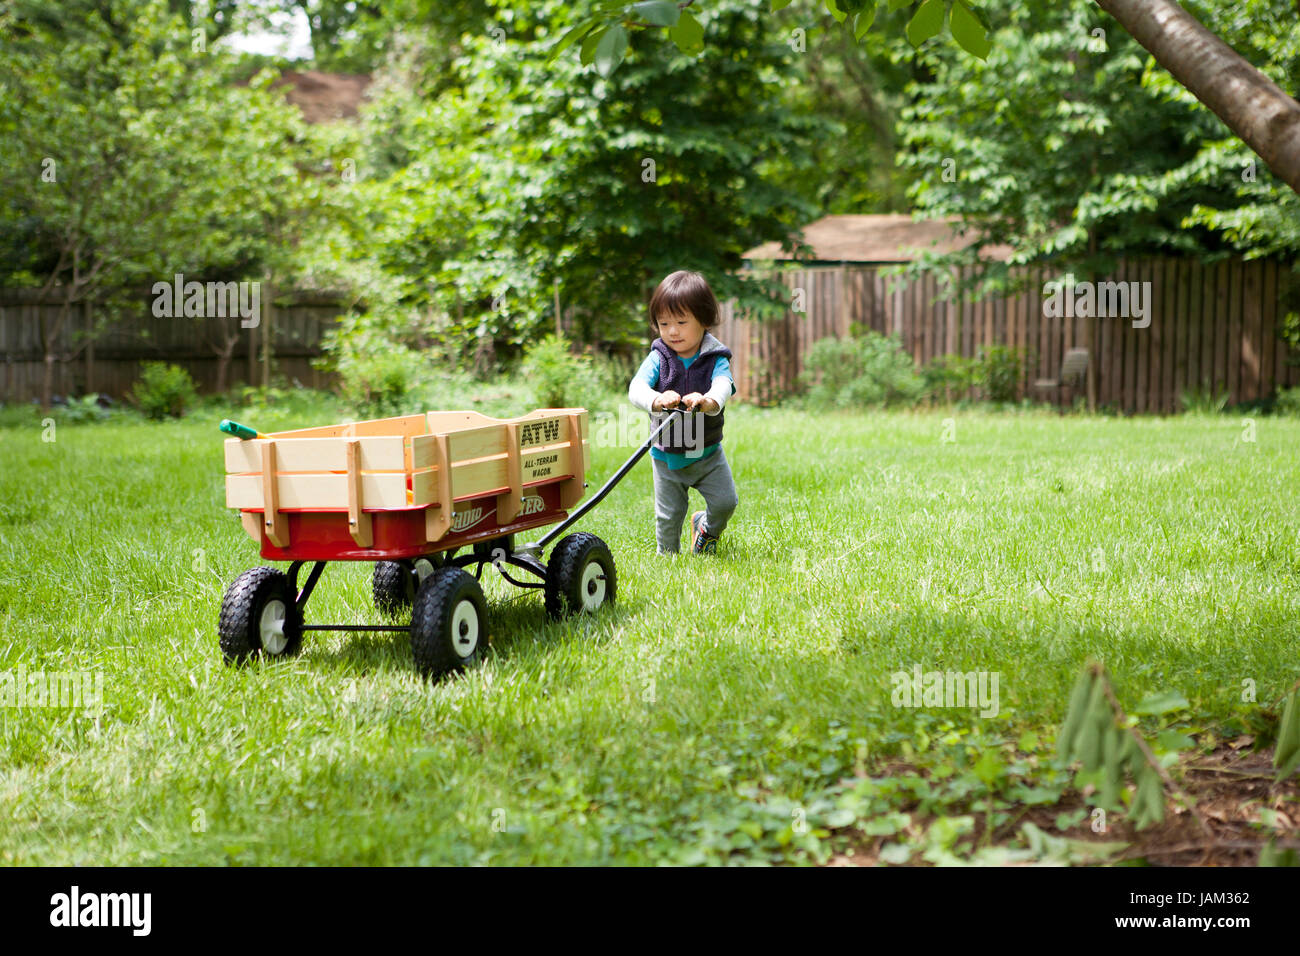 Asian boy, age 3, playing with a Radio Flyer wagon,on lawn - USA - Stock Image